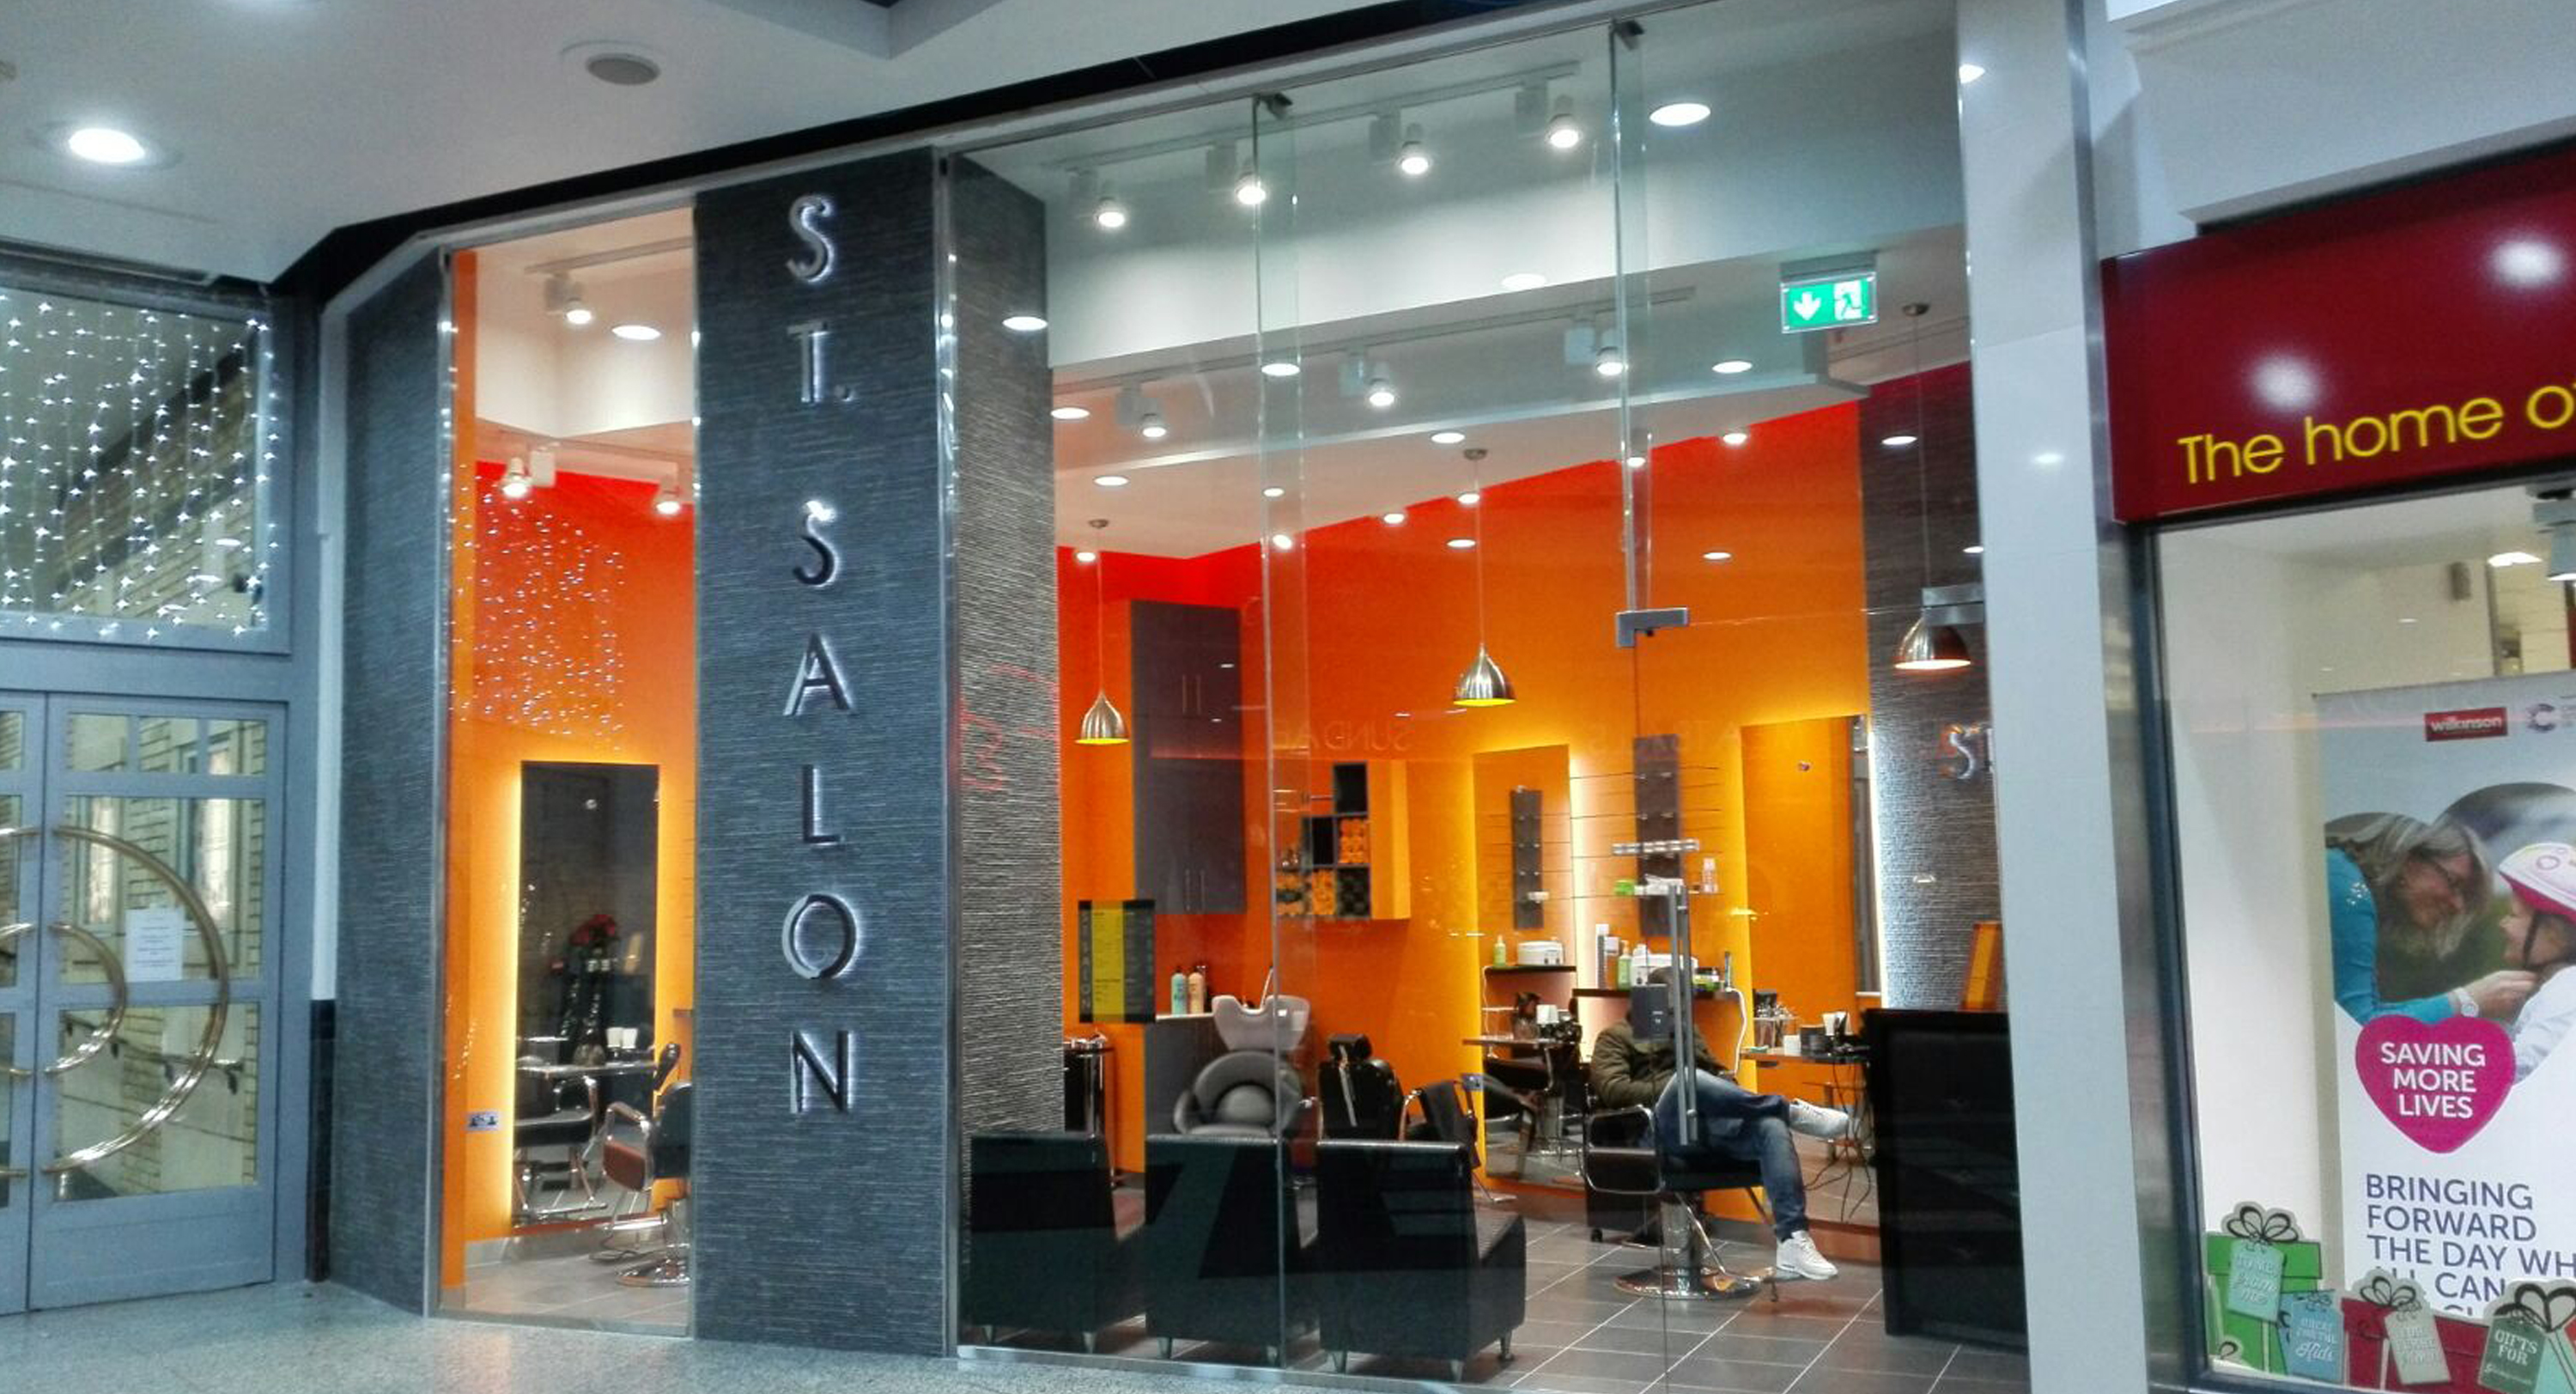 St. Salon Hairdresser